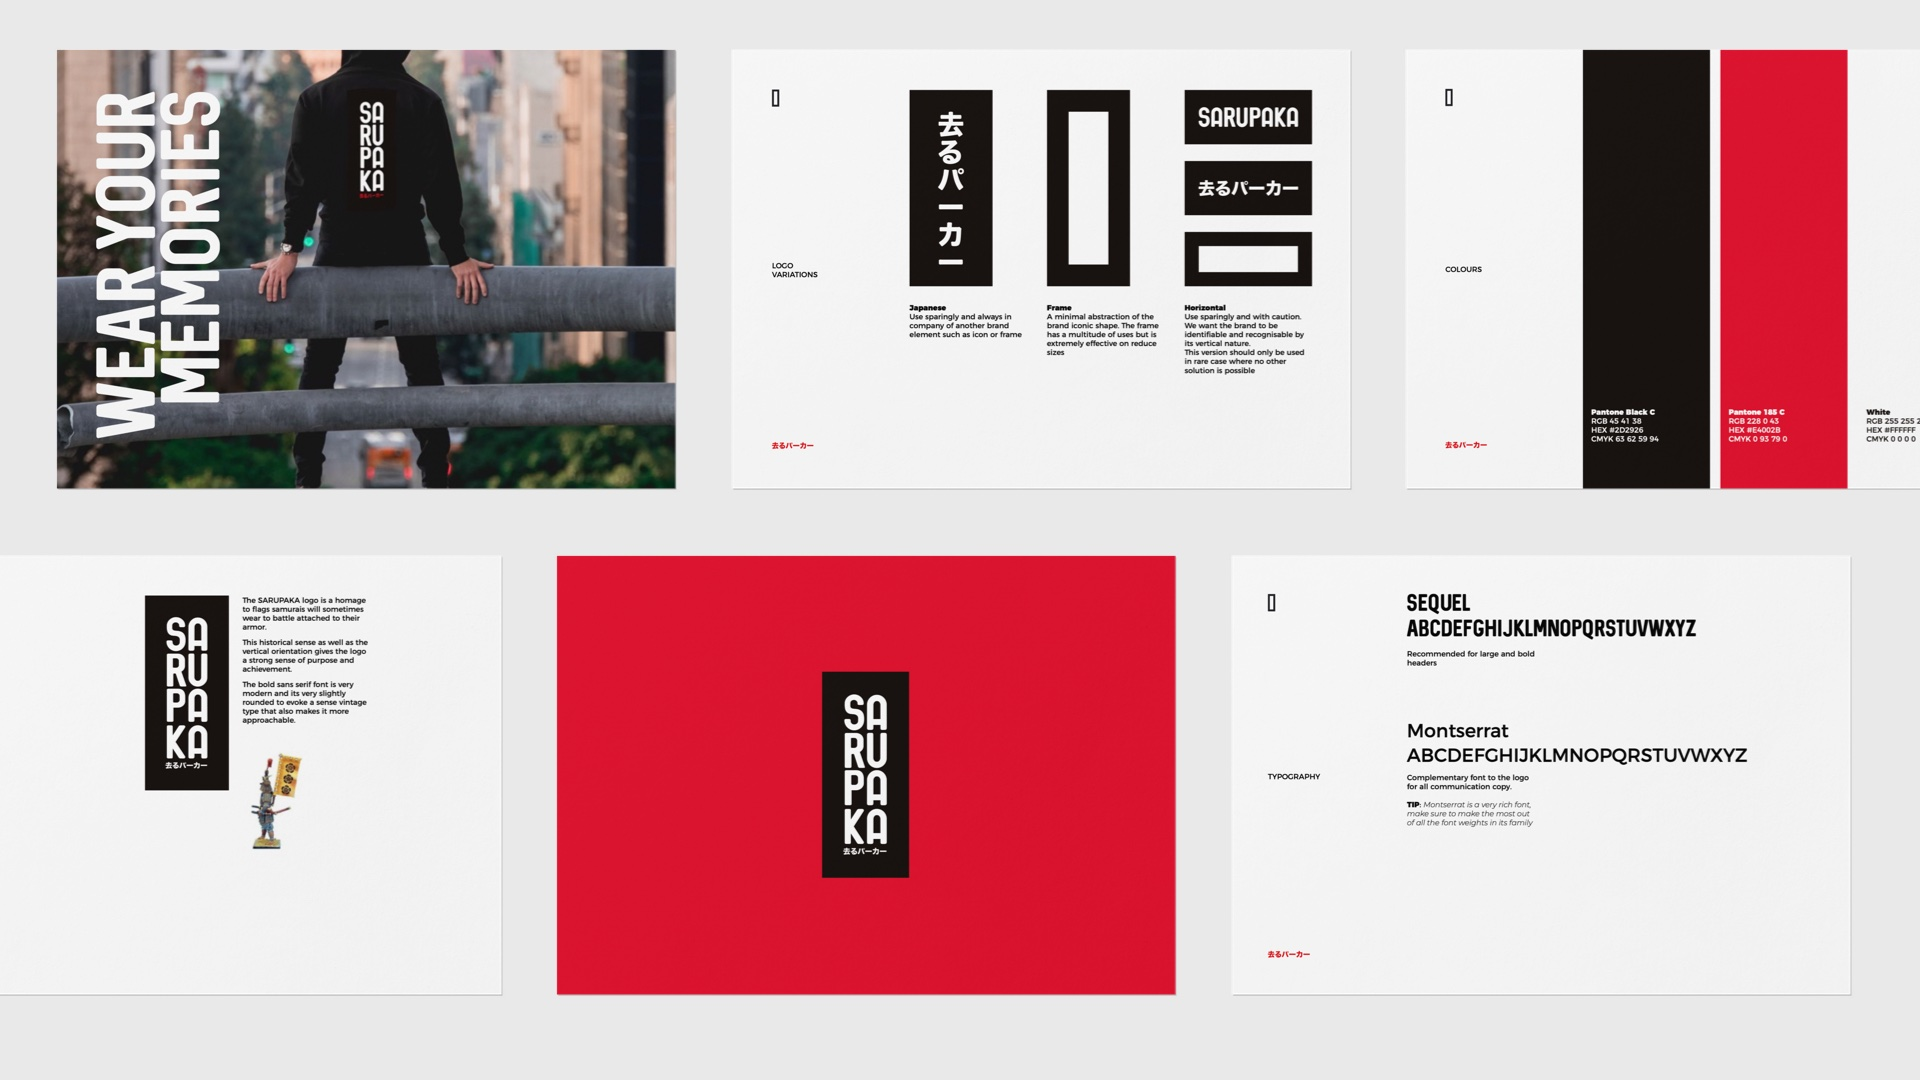 Pages of the brand style guides from sarupaka